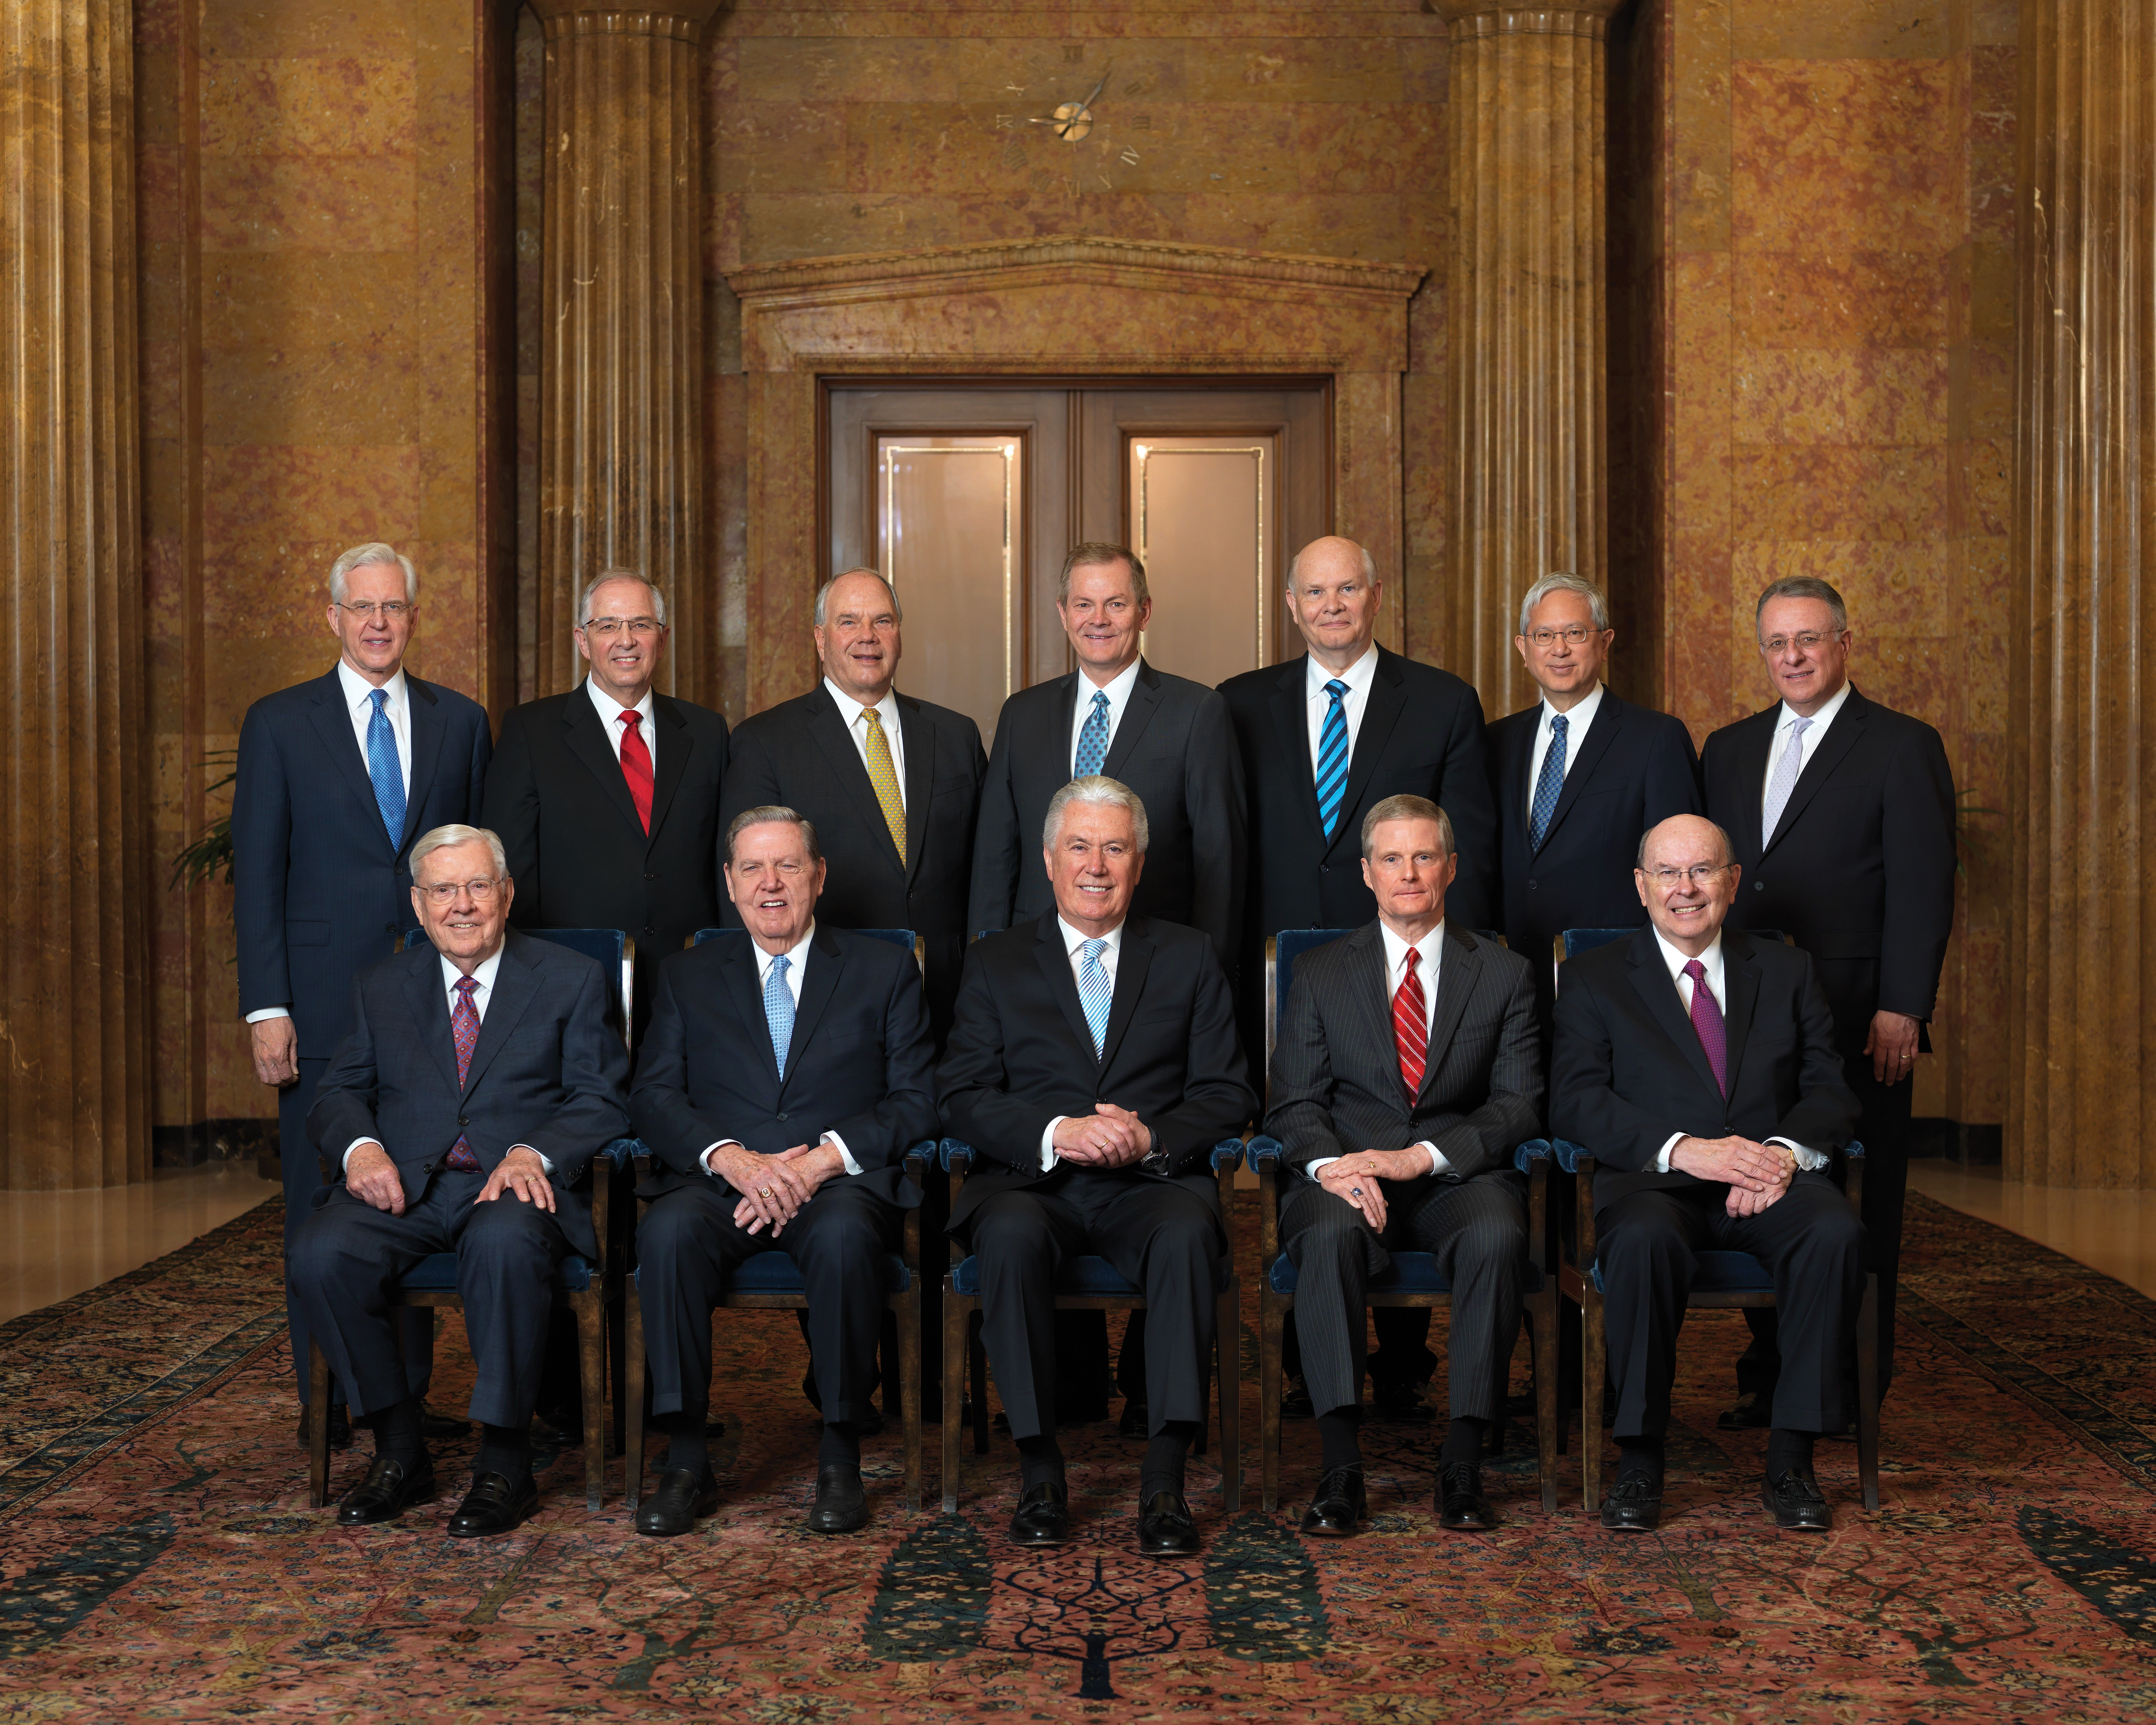 The official group portrait of the Quorum of the Twelve Apostles of The Church of Jesus Christ of Latter-day Saints, photographed April 2018. Front row, left to right: President M. Russell Ballard and Elders Jeffrey R. Holland, Dieter F. Uchtdorf, David A. Bednar, and Quentin L. Cook. Back row, left to right: Elders D. Todd Christofferson, Neil L. Andersen, Ronald A. Rasband, Gary E. Stevenson, Dale G. Renlund, Gerrit W. Gong, and Ulisses Soares.